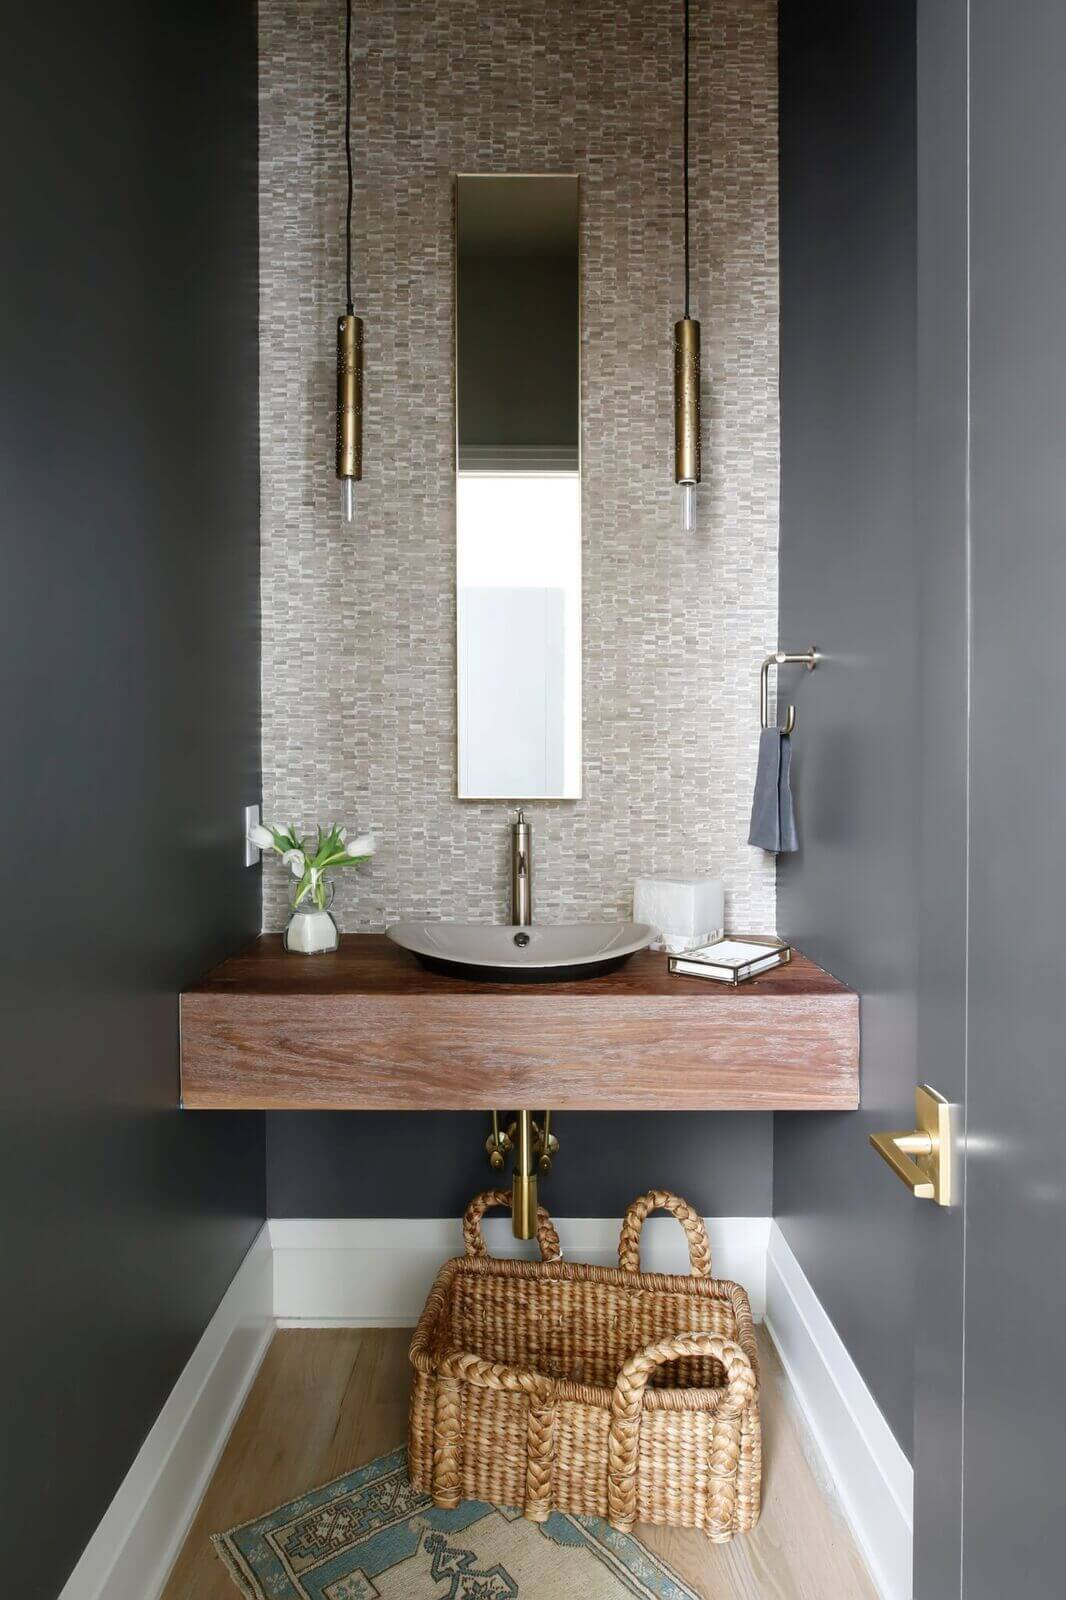 """This powder room is everyone's favorite,"" says Connie. ""We designed a custom wood shelf that houses a beautiful shallow ceramic bowl. The back wall is tiled in a very textured limestone mosaic. The mirror is intentionally small but functional, and the hanging brass light pendants have tiny sparkles of light. Walls are painted a dramatic dark taupe."""